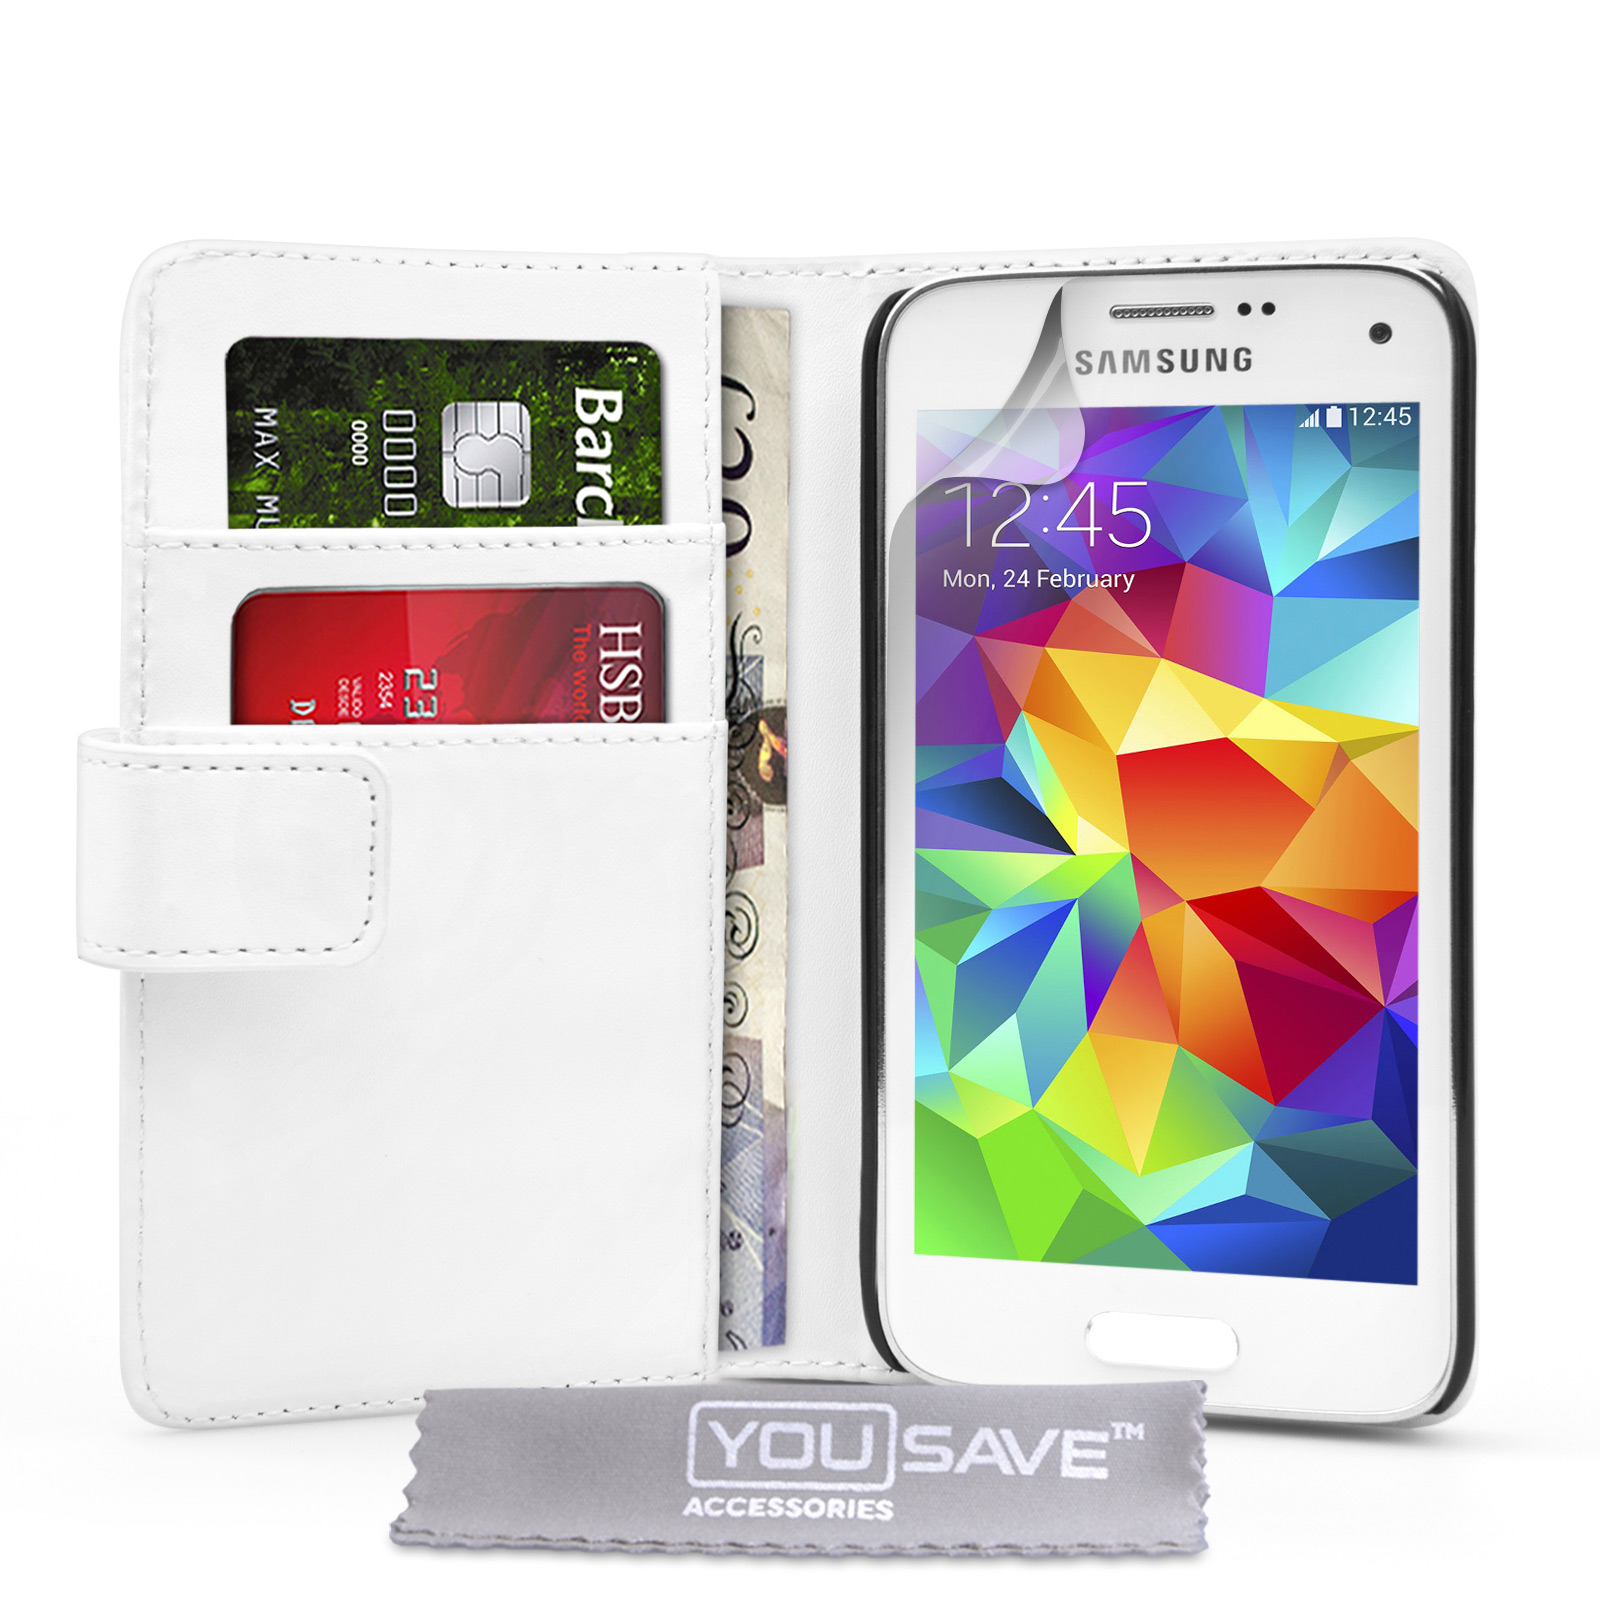 YouSave Samsung Galaxy S5 Mini Leather-Effect Wallet Case - White